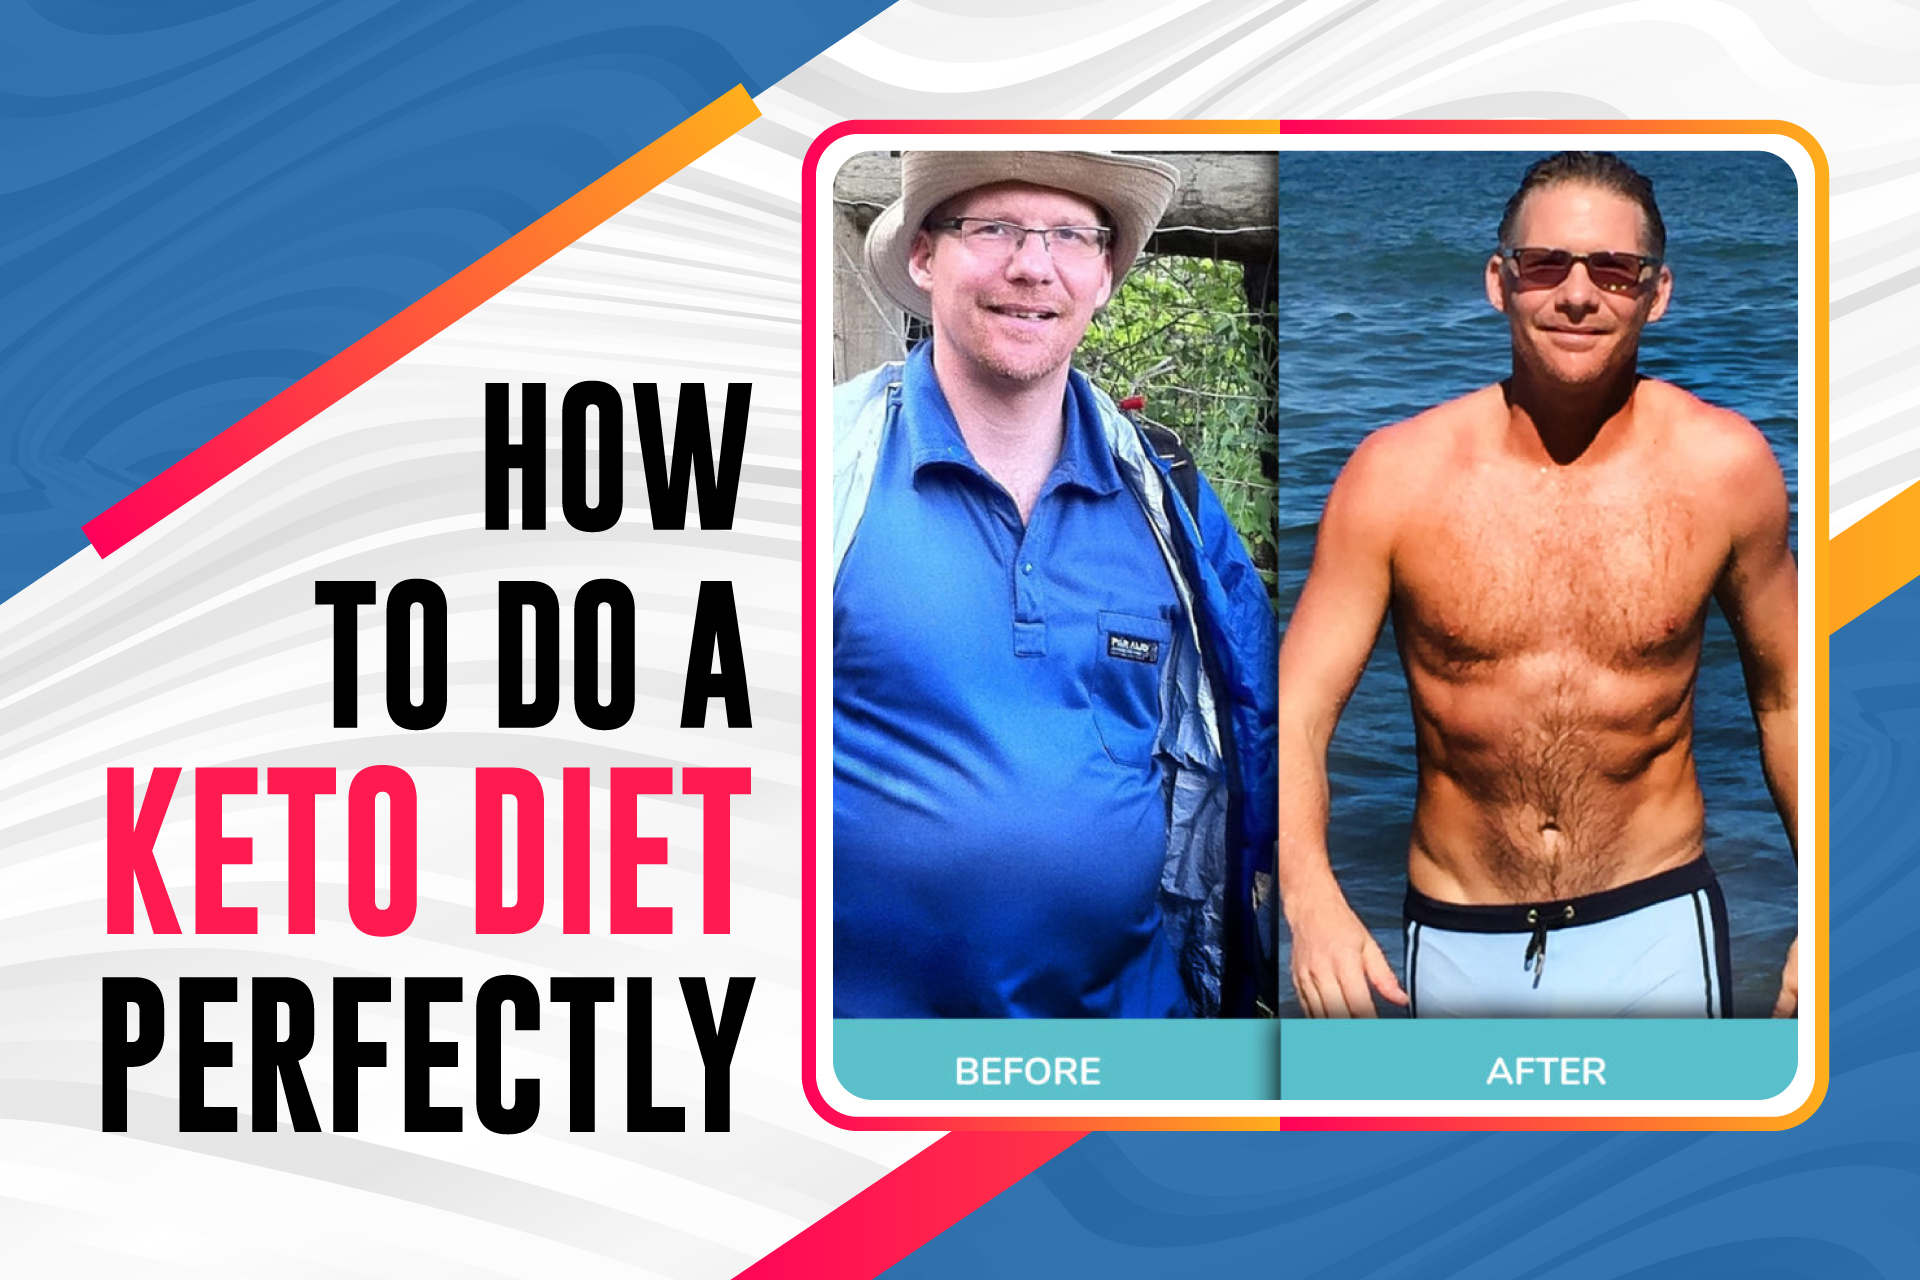 How To Do A Keto Diet Perfectly